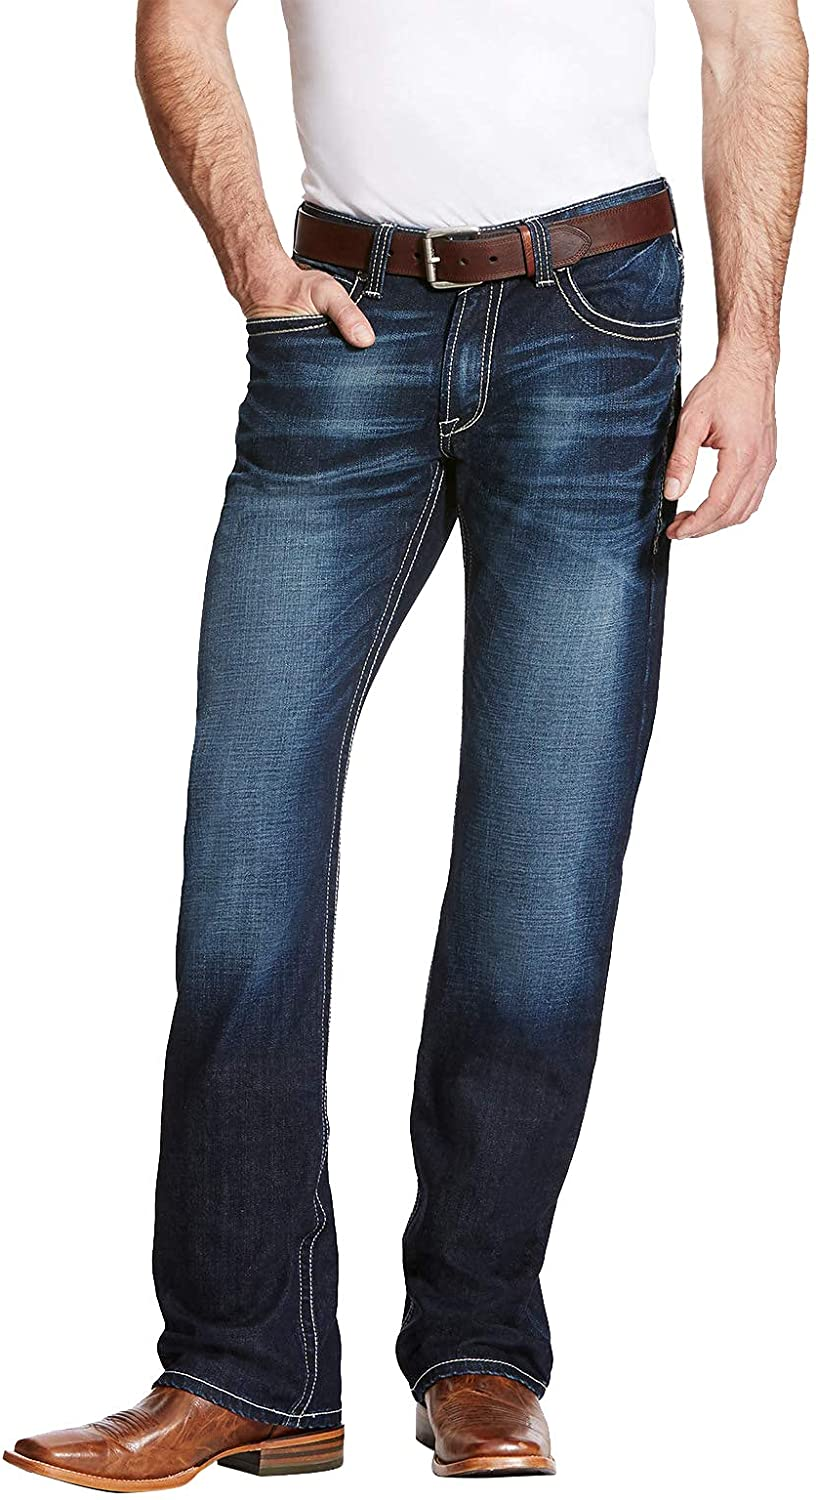 Ariat M4 service Low Rise Boot San Francisco Mall Cut Men's – Denim Jeans Relaxed Fit